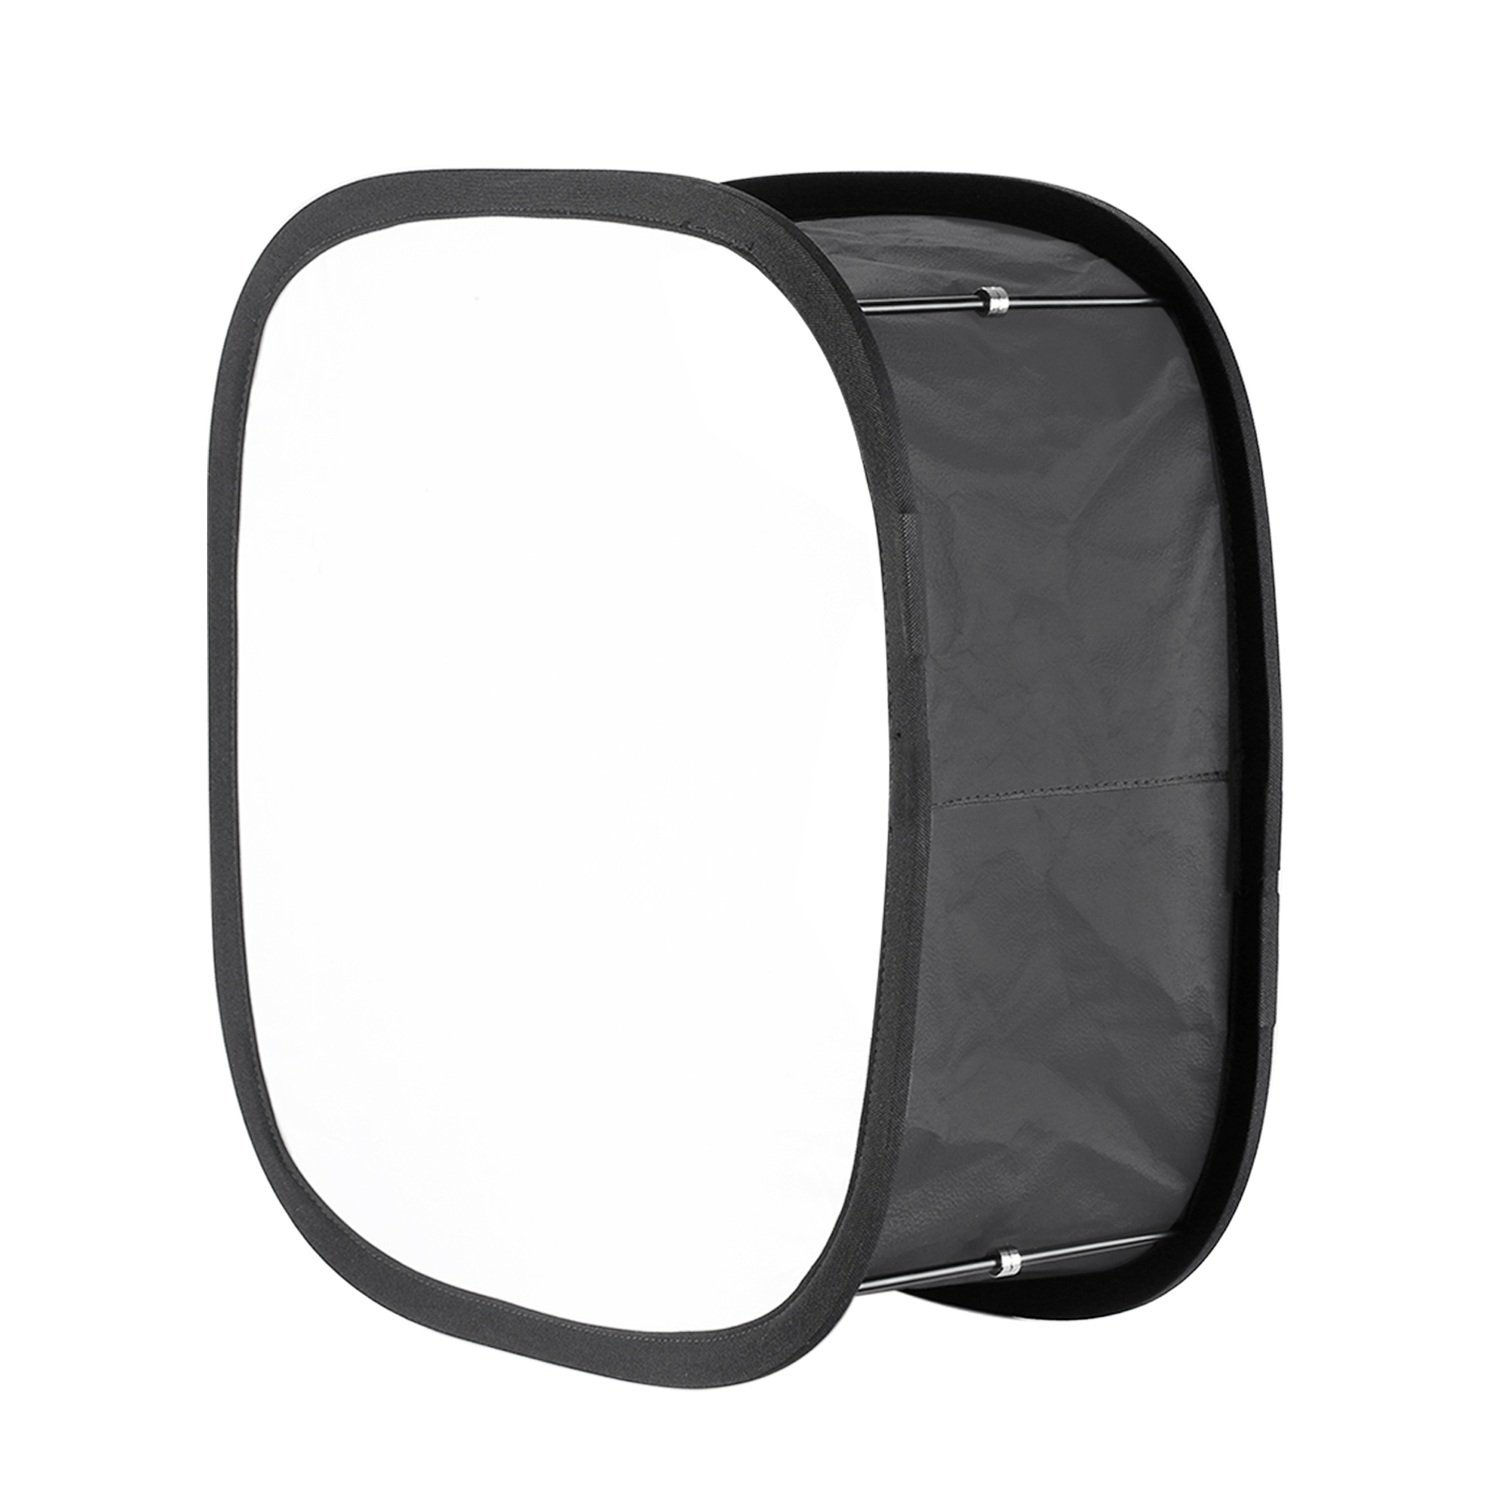 Neewer Collapsible Softbox Diffuser for 480 LED Panel - Outer 16x6.7 inches, Inner 5.6x5.6 inches, with Strap Attachment and Carrying Bag for Photo Studio Portrait Video Shooting